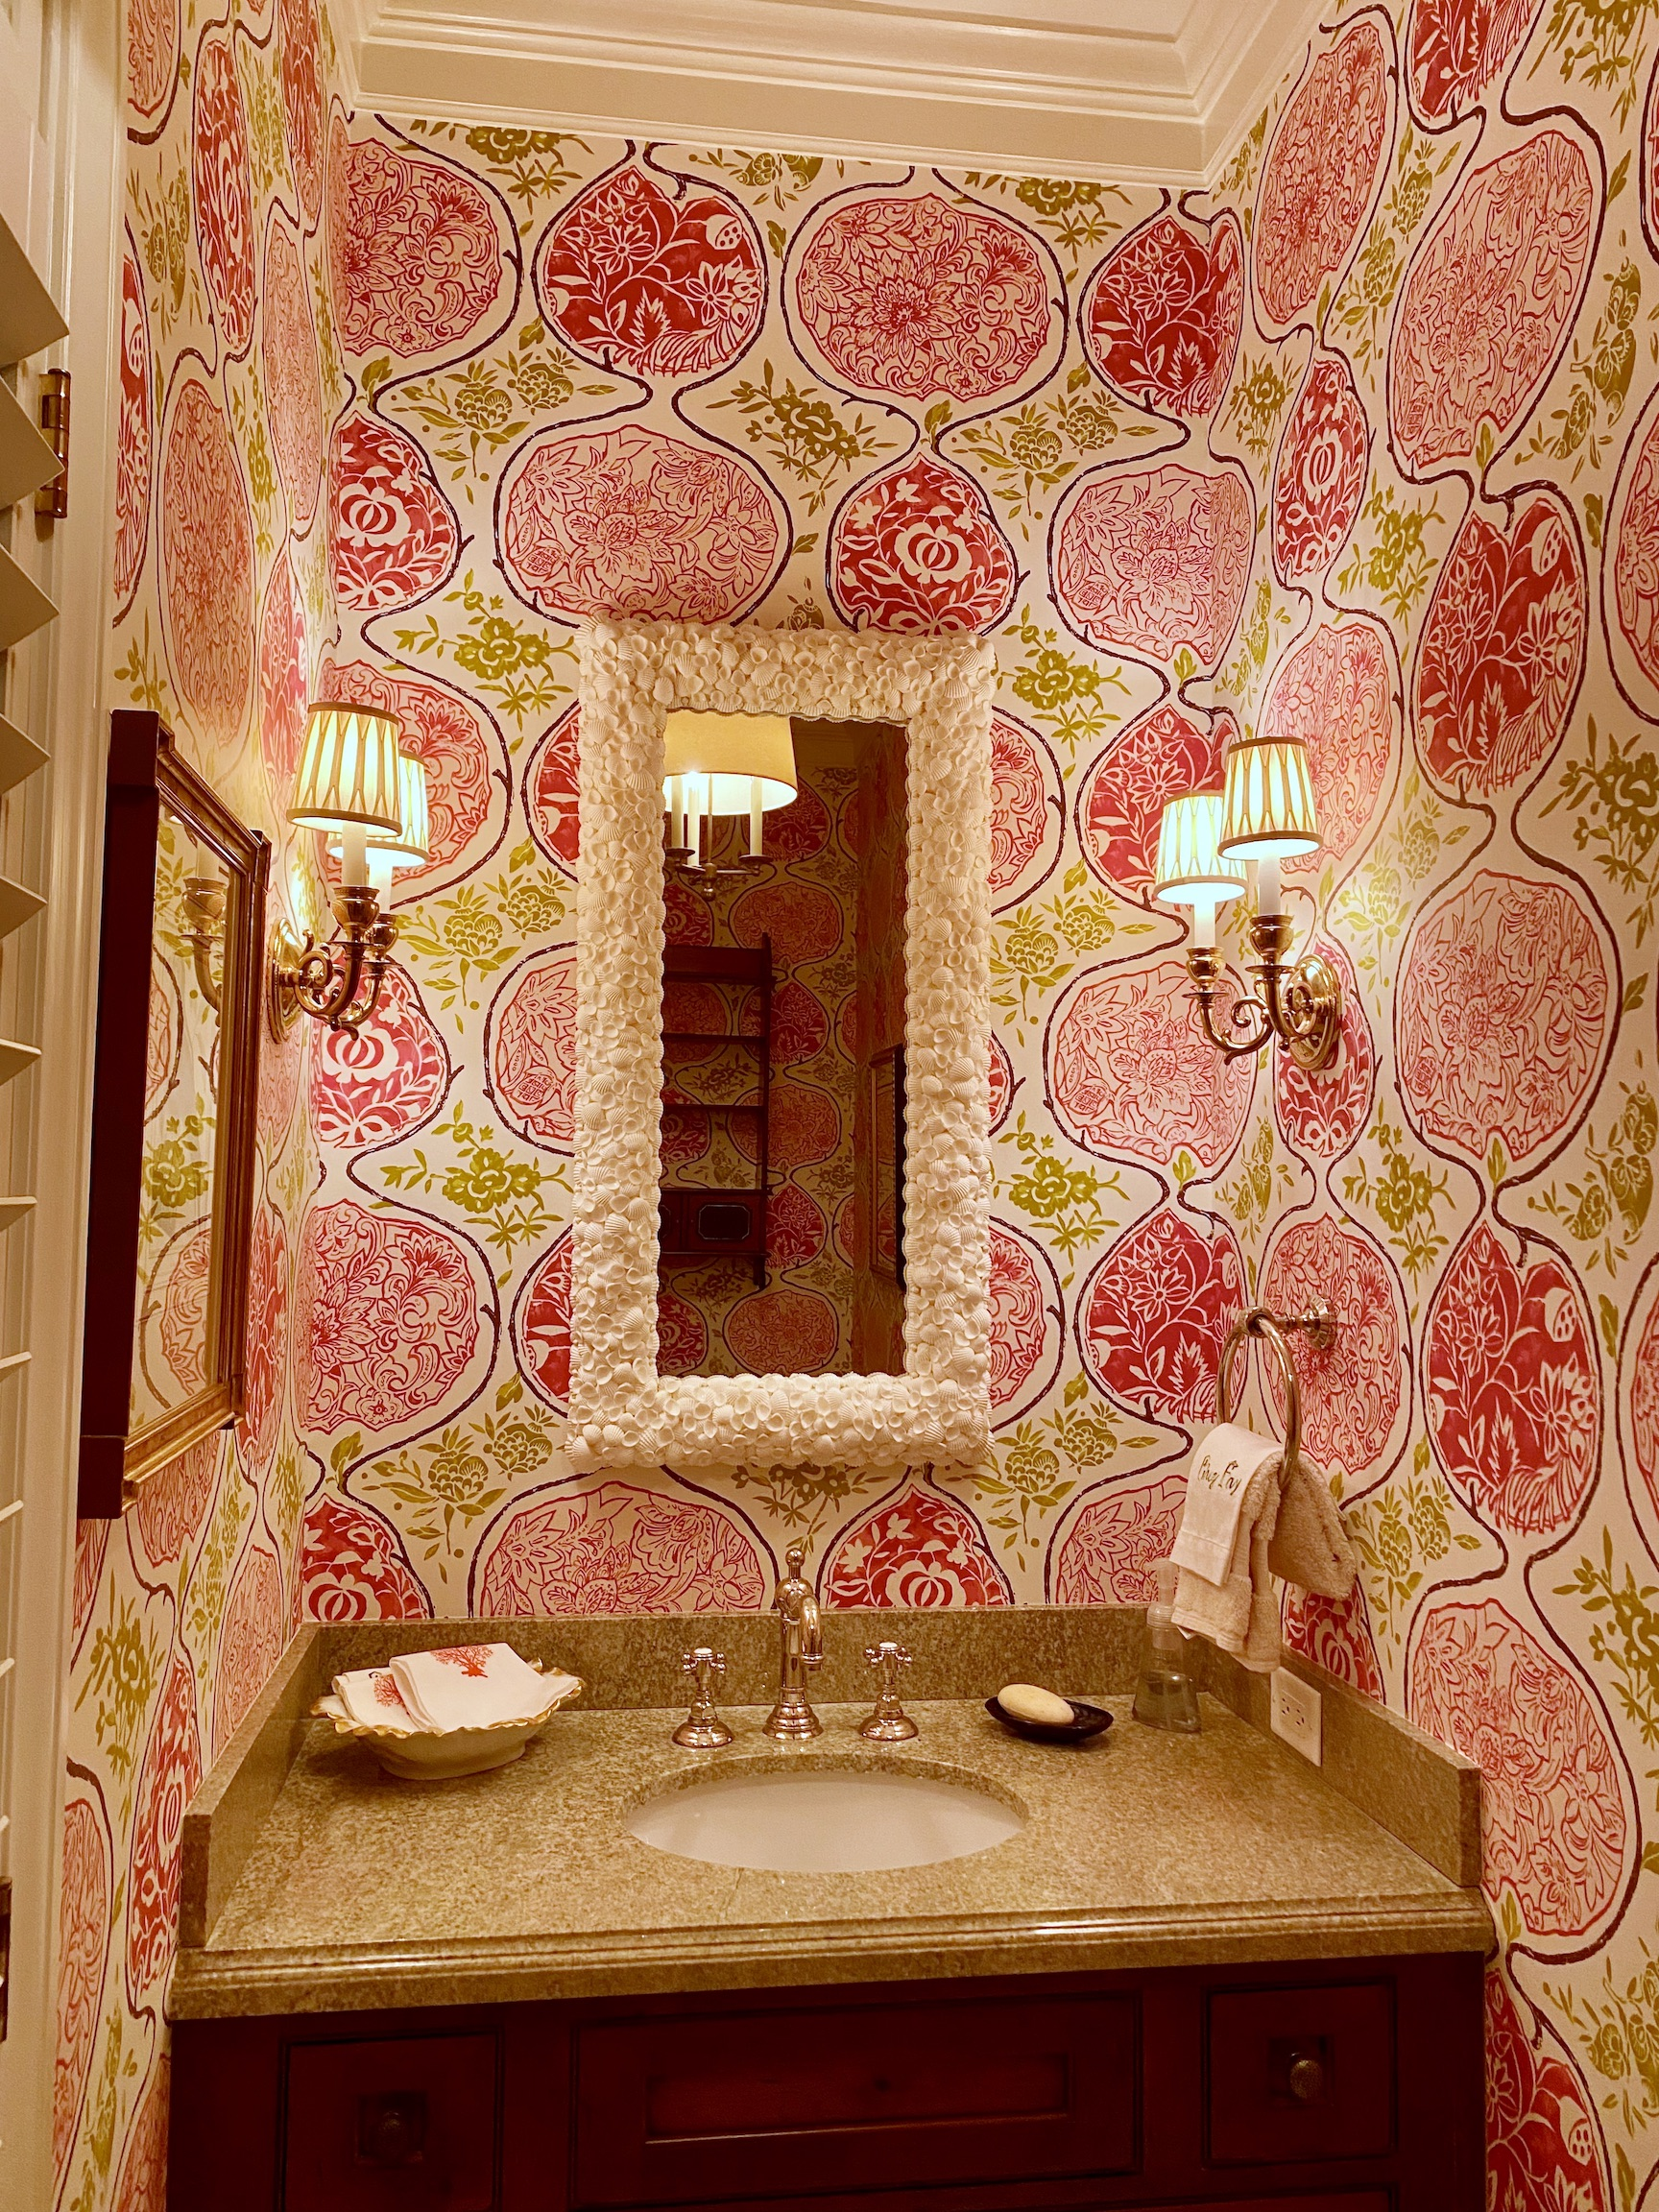 rectangular mirror made with white shells hung on pink floral wallpaper in a bathroom